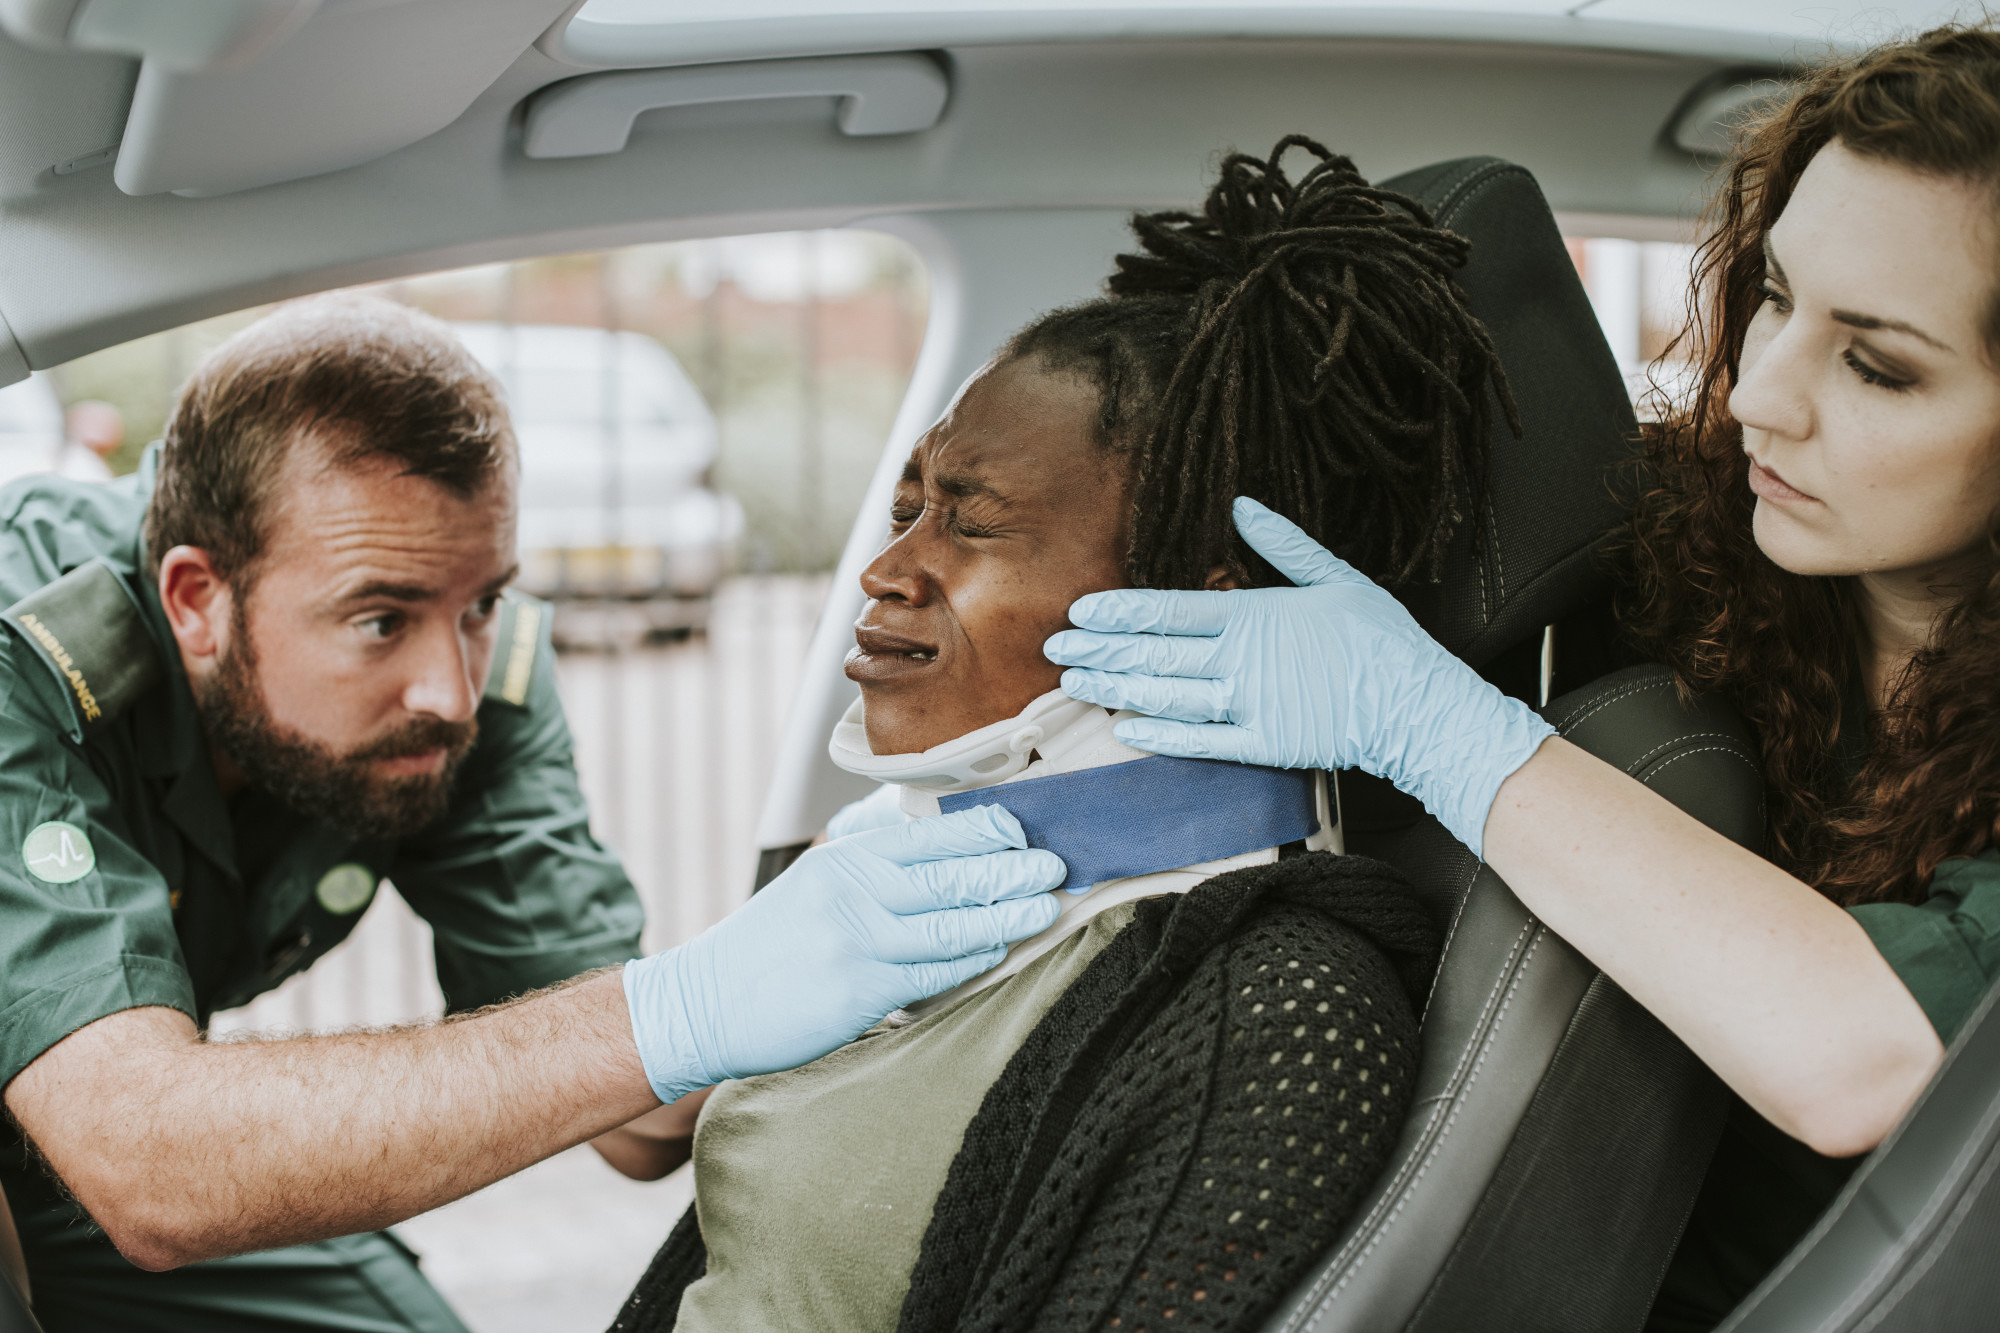 9 Of The Most Common Accident Injuries